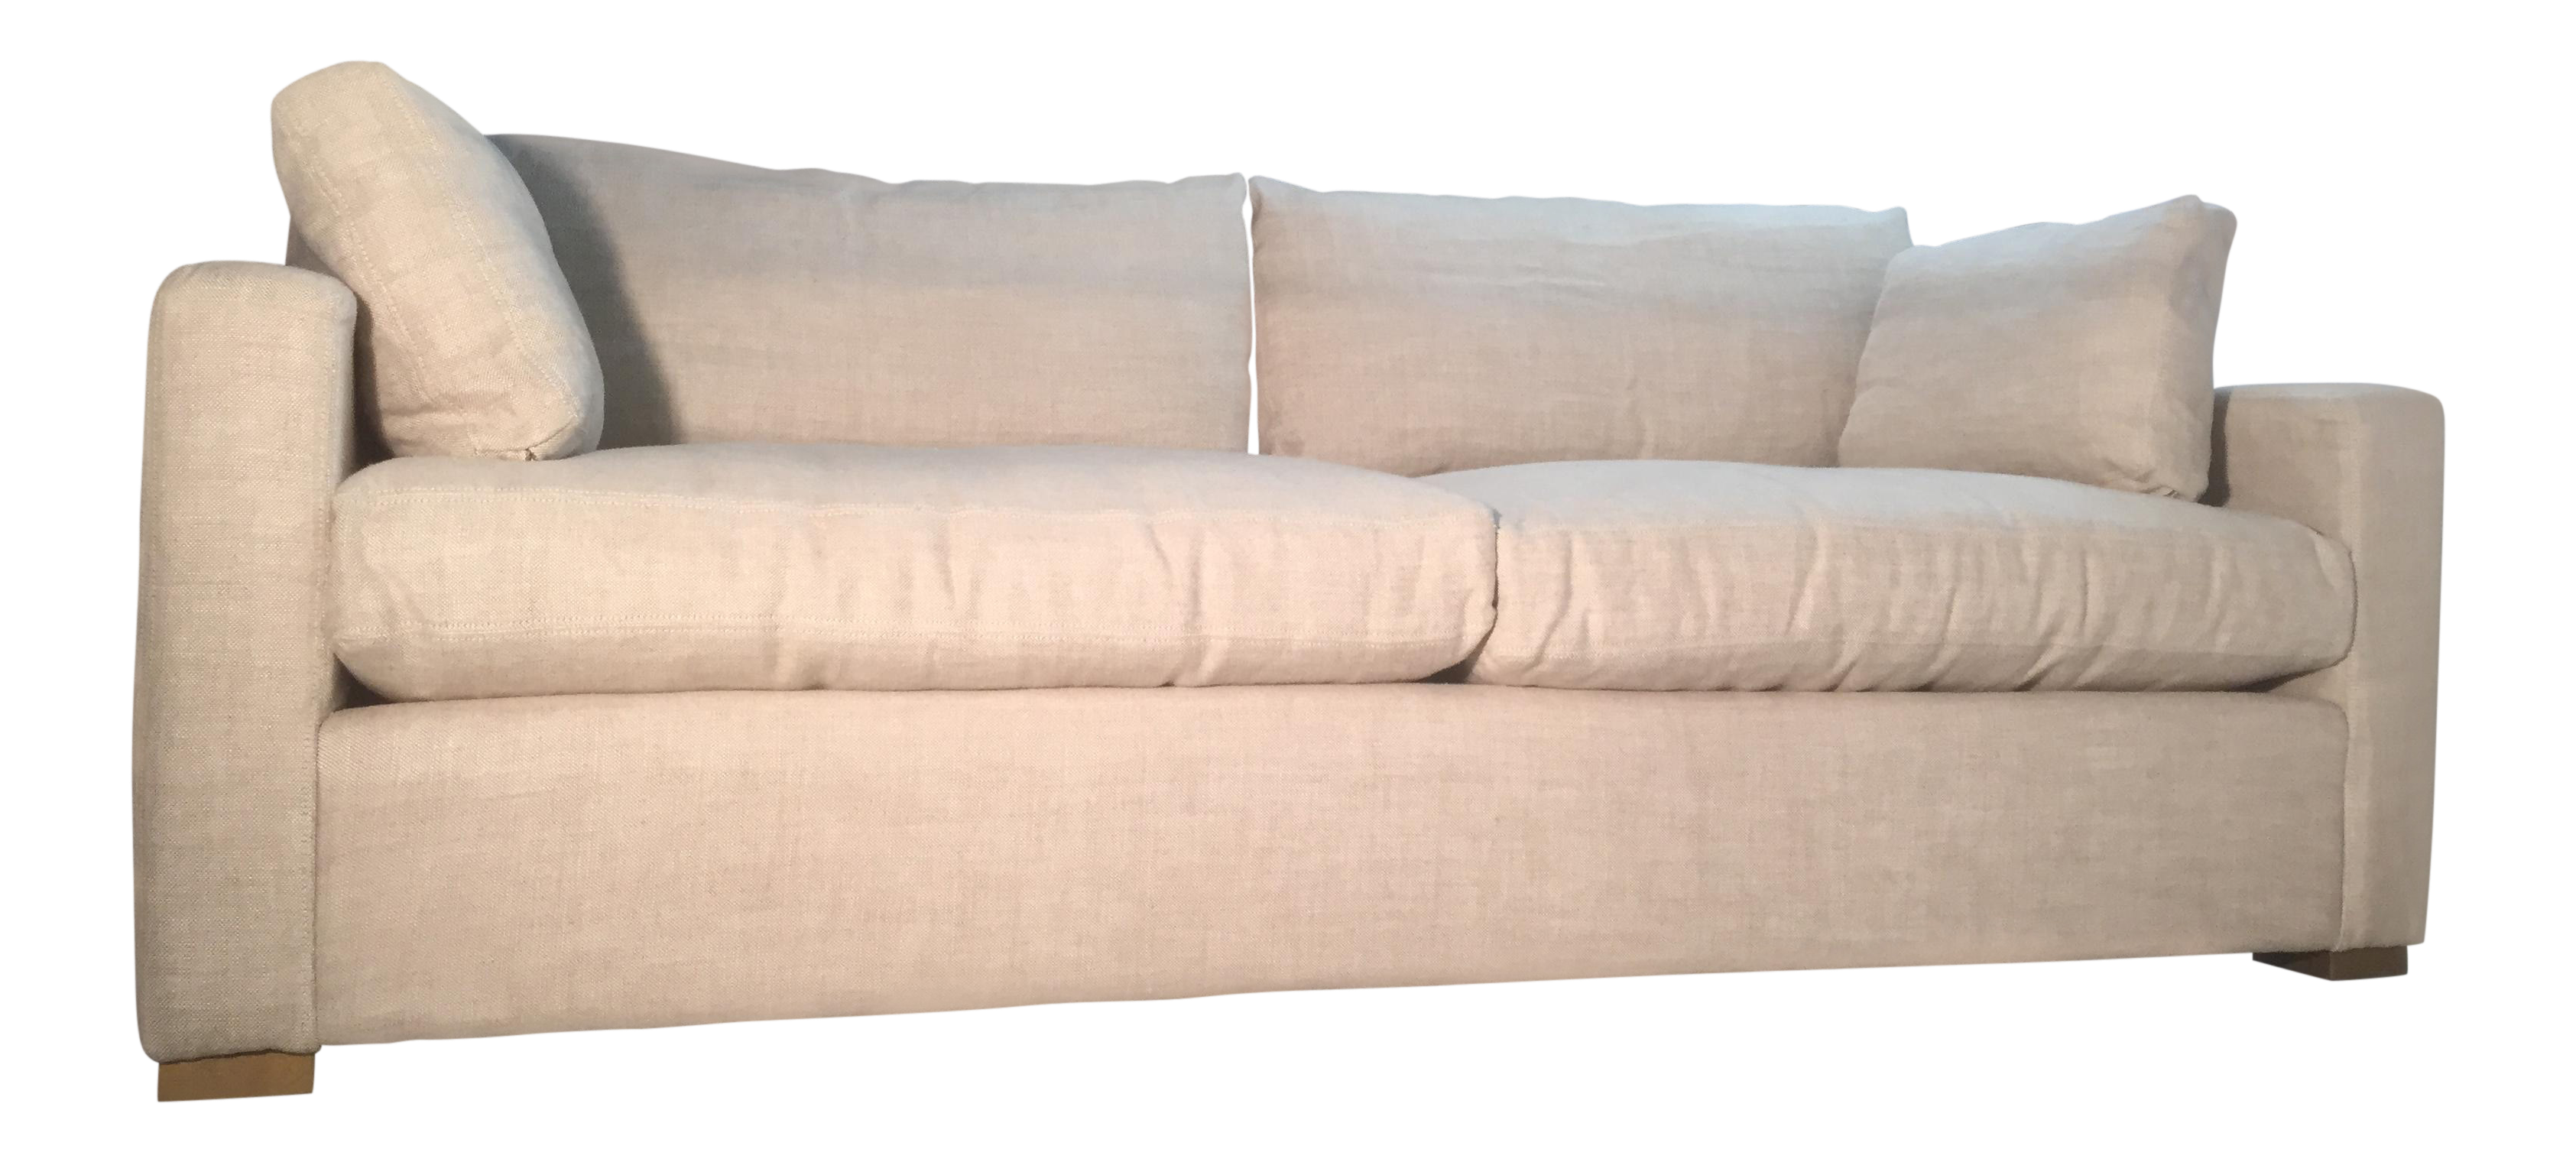 Great Restoration Hardware Belgian Track Arm Upholstered Down Sofa   Image 1 Of 12